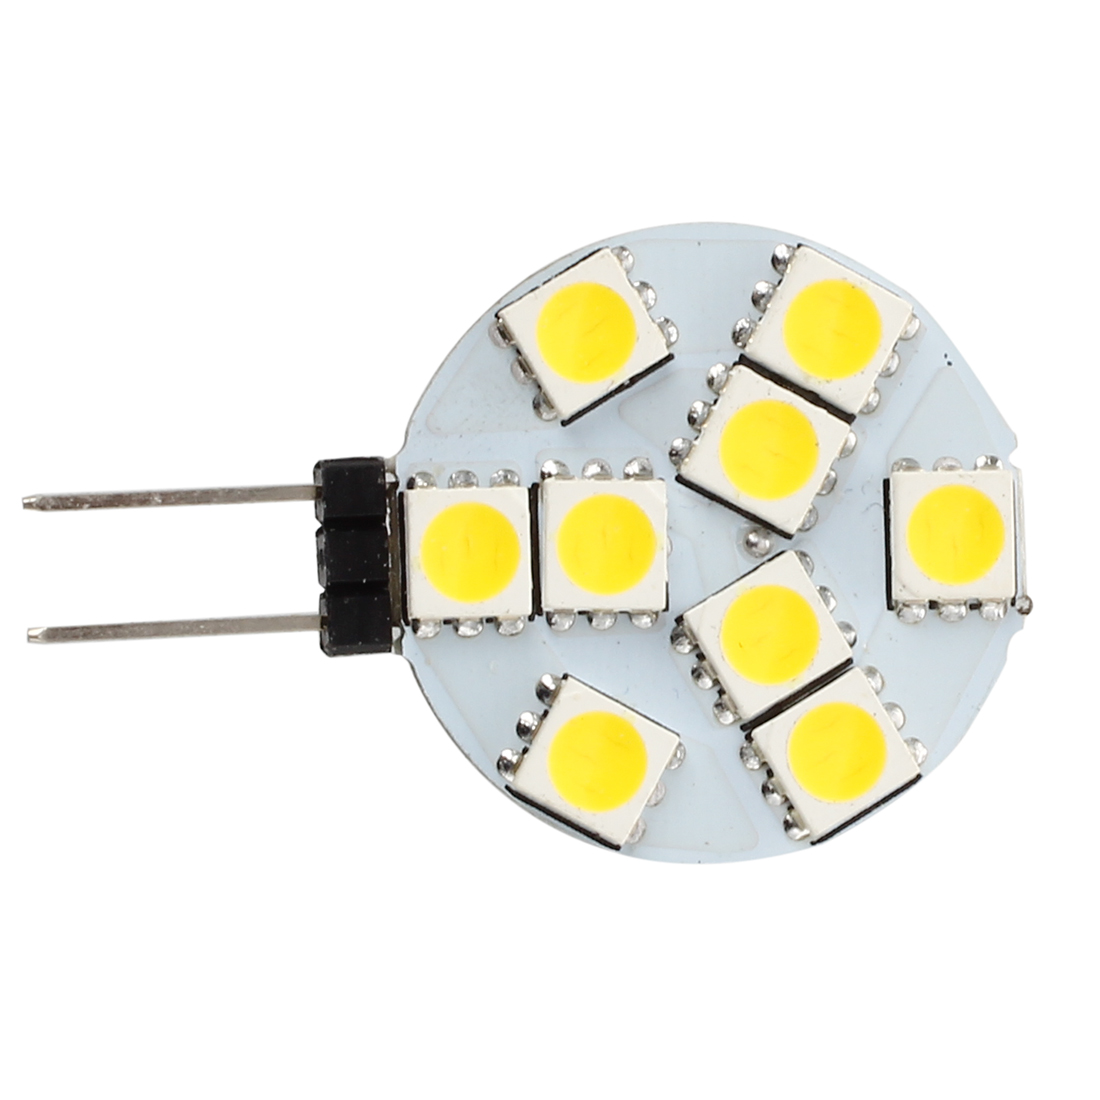 <font><b>10</b></font> <font><b>pcs</b></font> <font><b>G4</b></font> DC 12V 9 5050 SMD LED Spot Light Bulb Warm White for RV Boat image